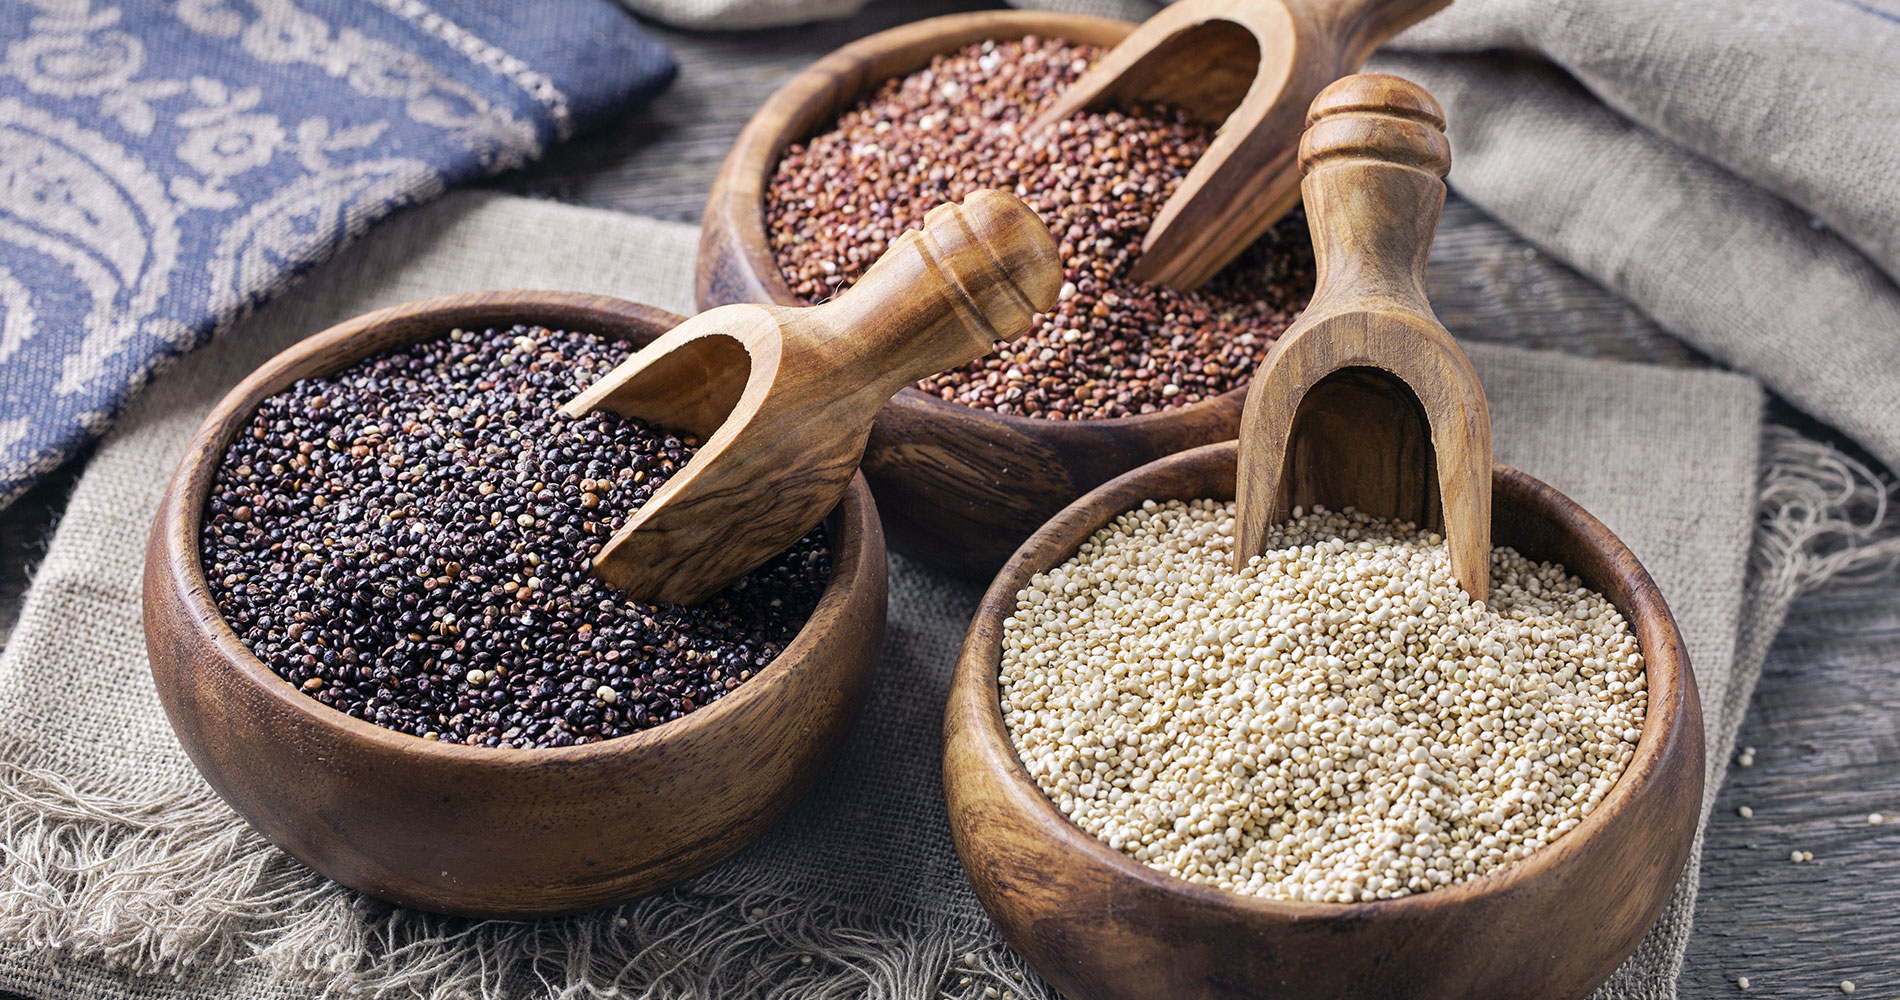 What is The Nutrition of Quinoa Seed?